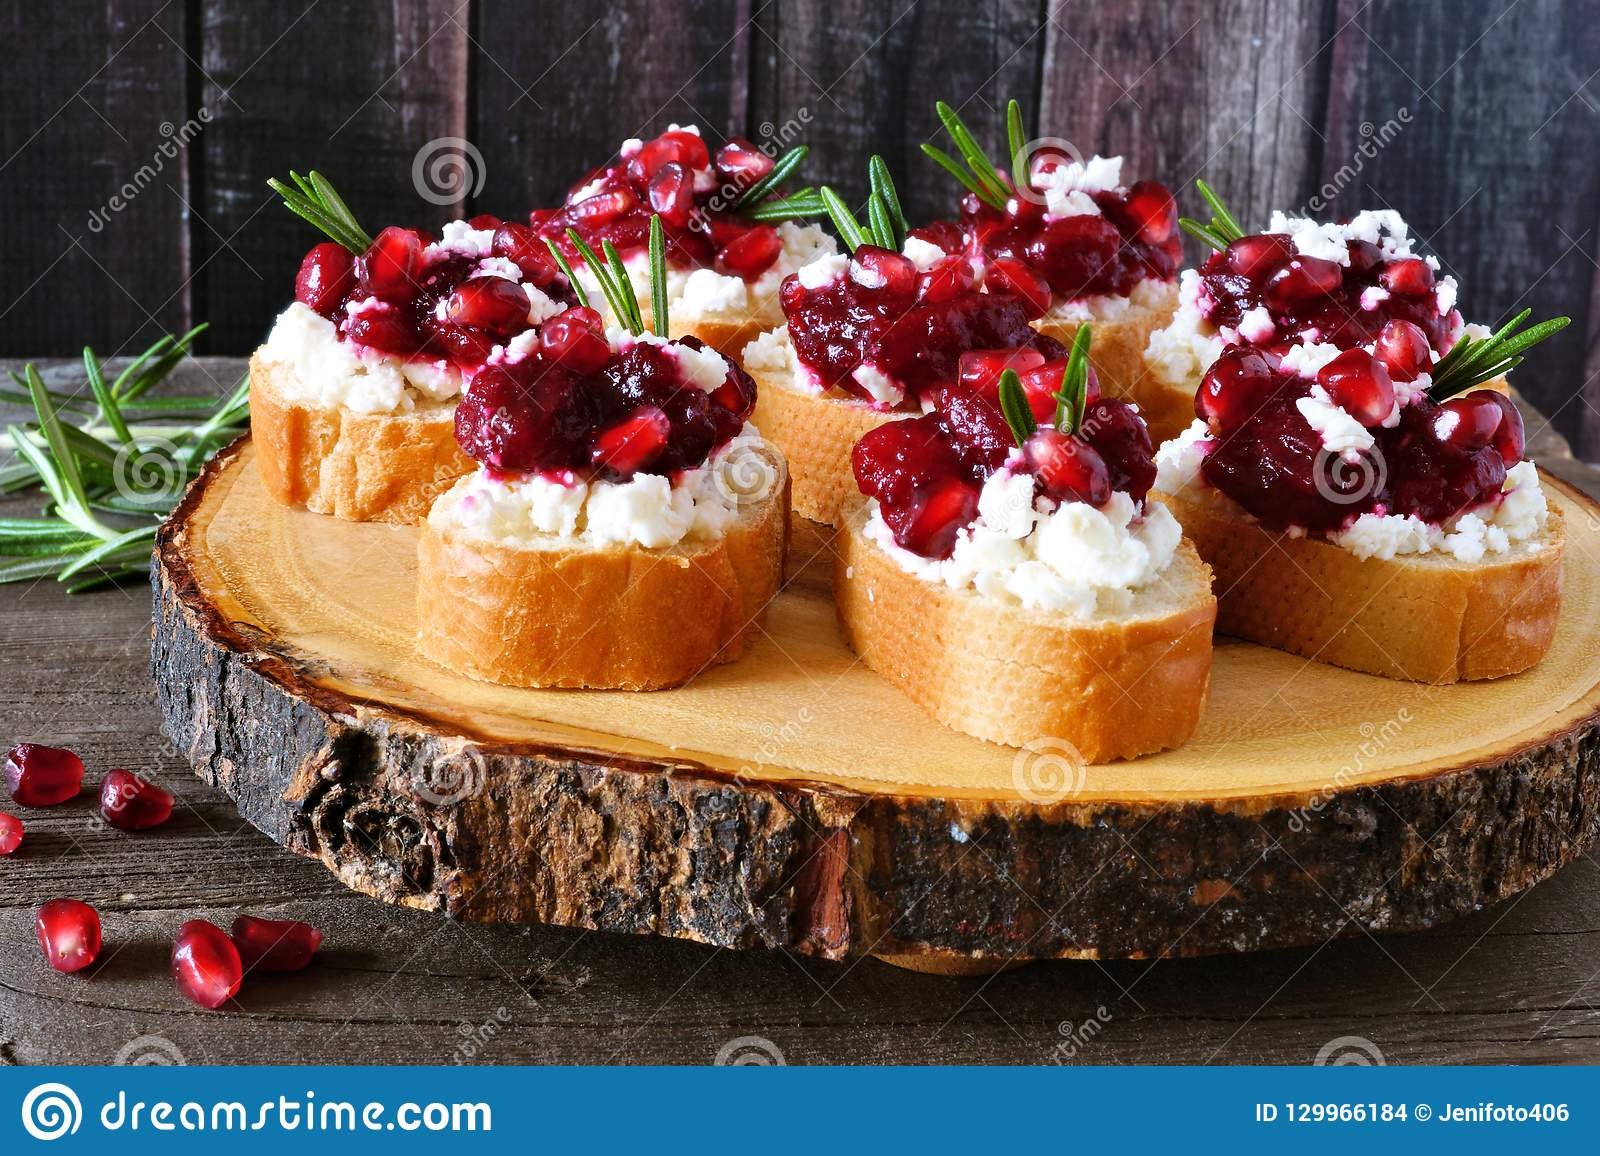 Holiday Crostini Appetizers With Cranberries Pomegranates And Feta On A Wood Log Platter Stock Photo Image Of Holiday Appetizer 129966184